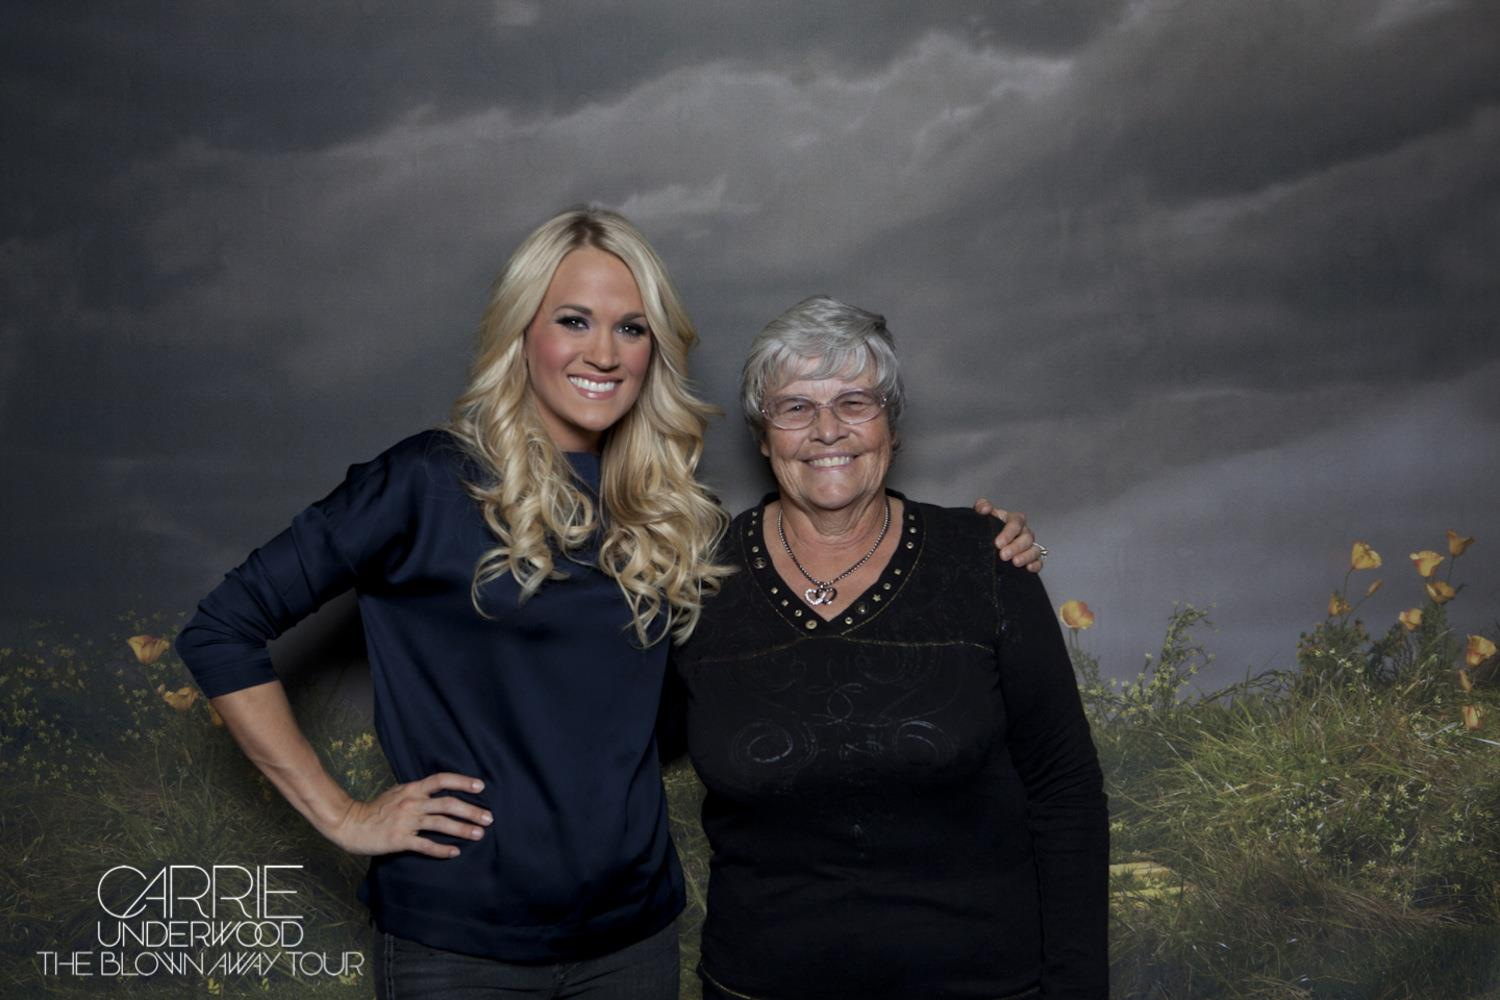 meet and greet carrie underwood tickets pittsburgh